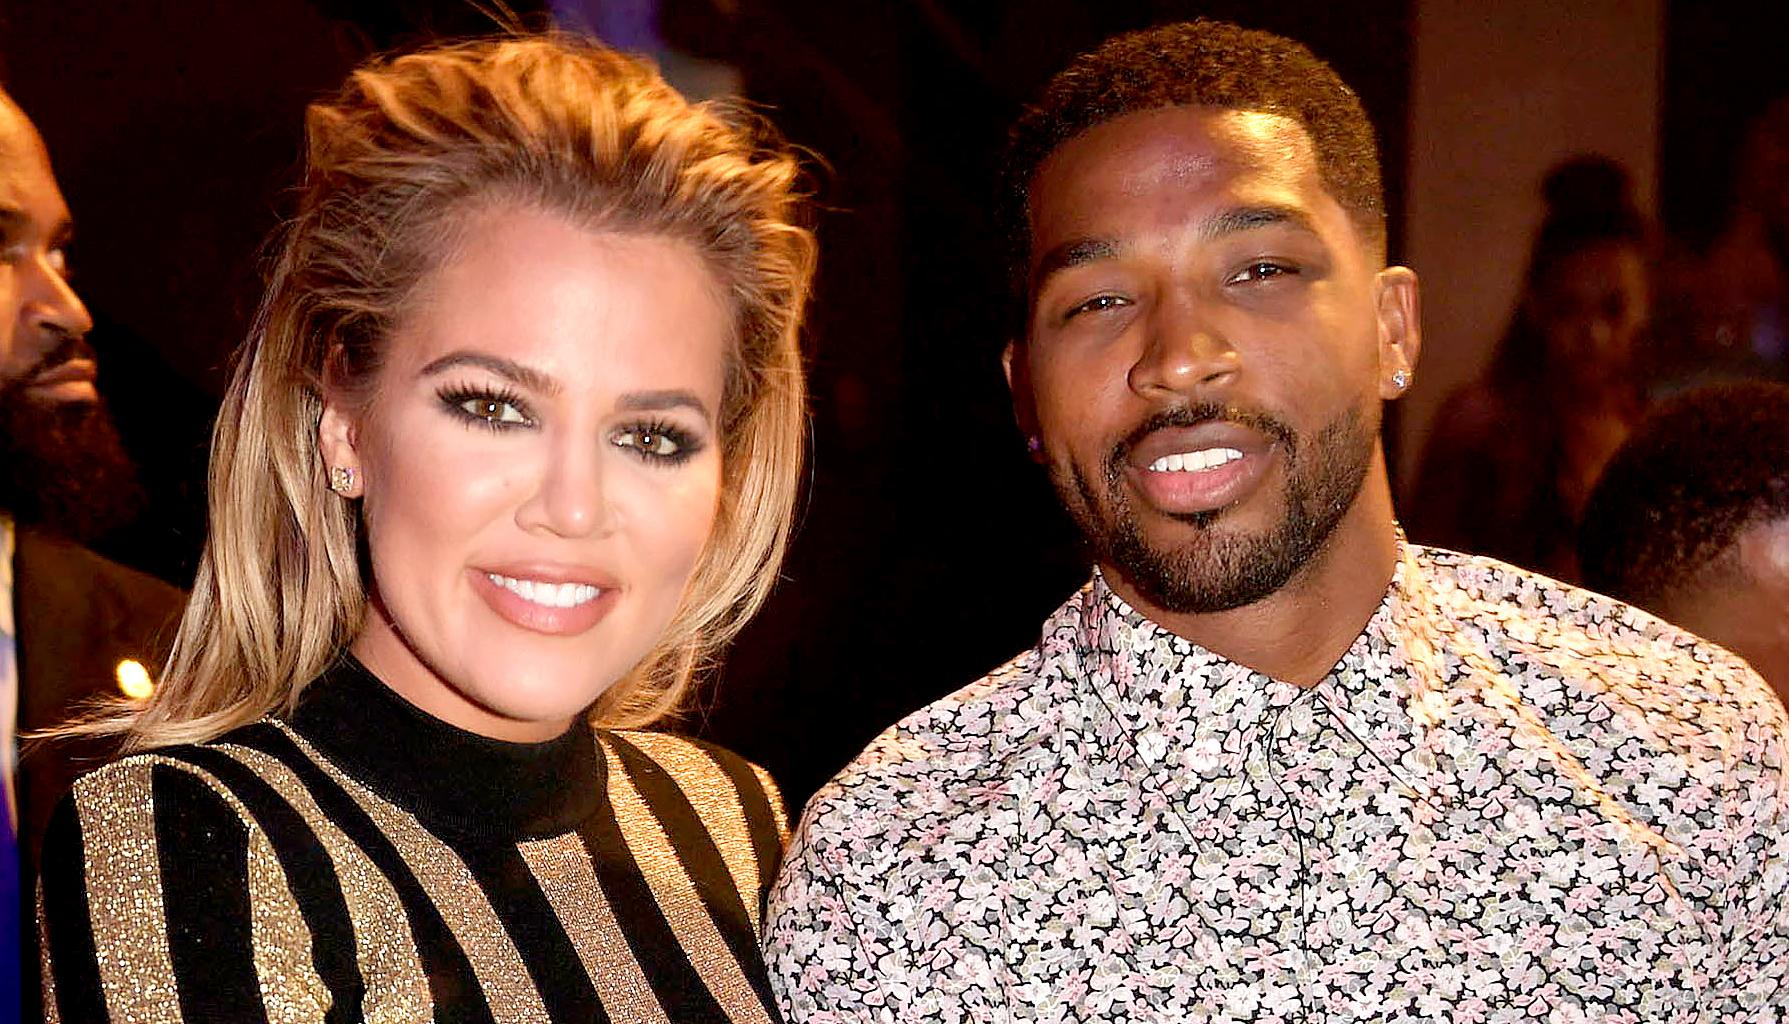 KUWTK: Are Khloe Kardashian And Tristan Thompson Engaged? - The Truth!